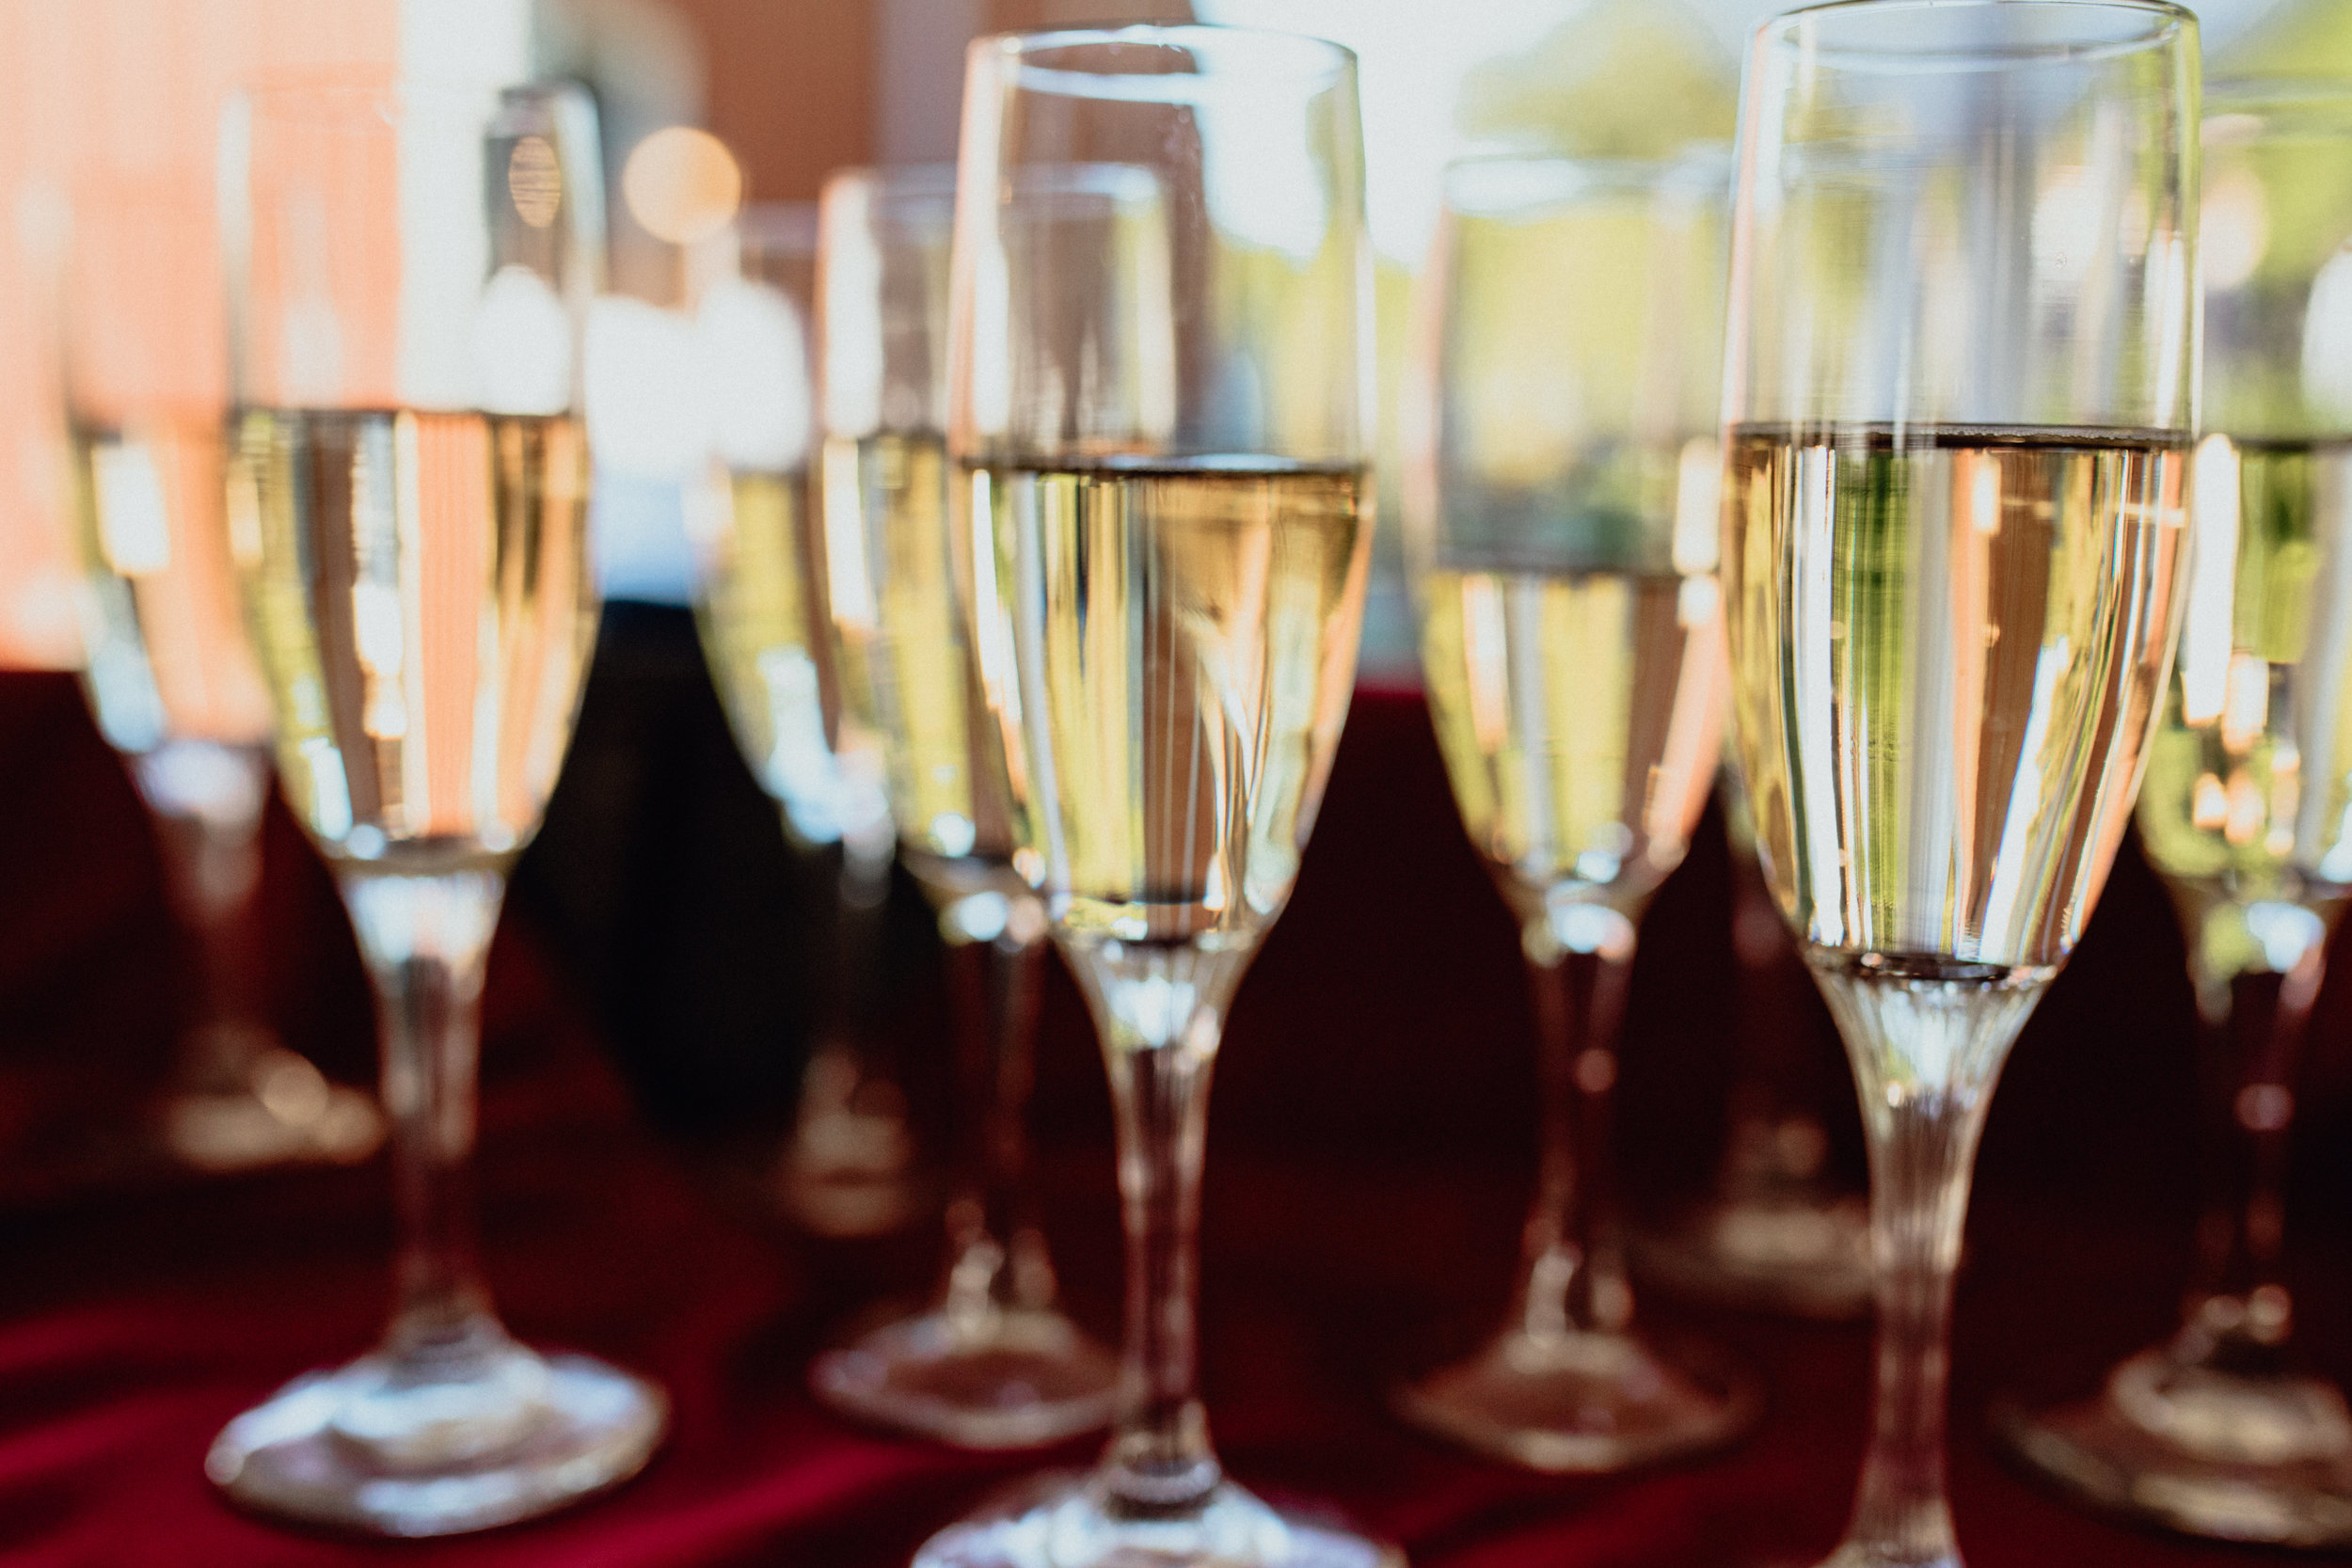 close up of filled champagne glasses on red tablecloth